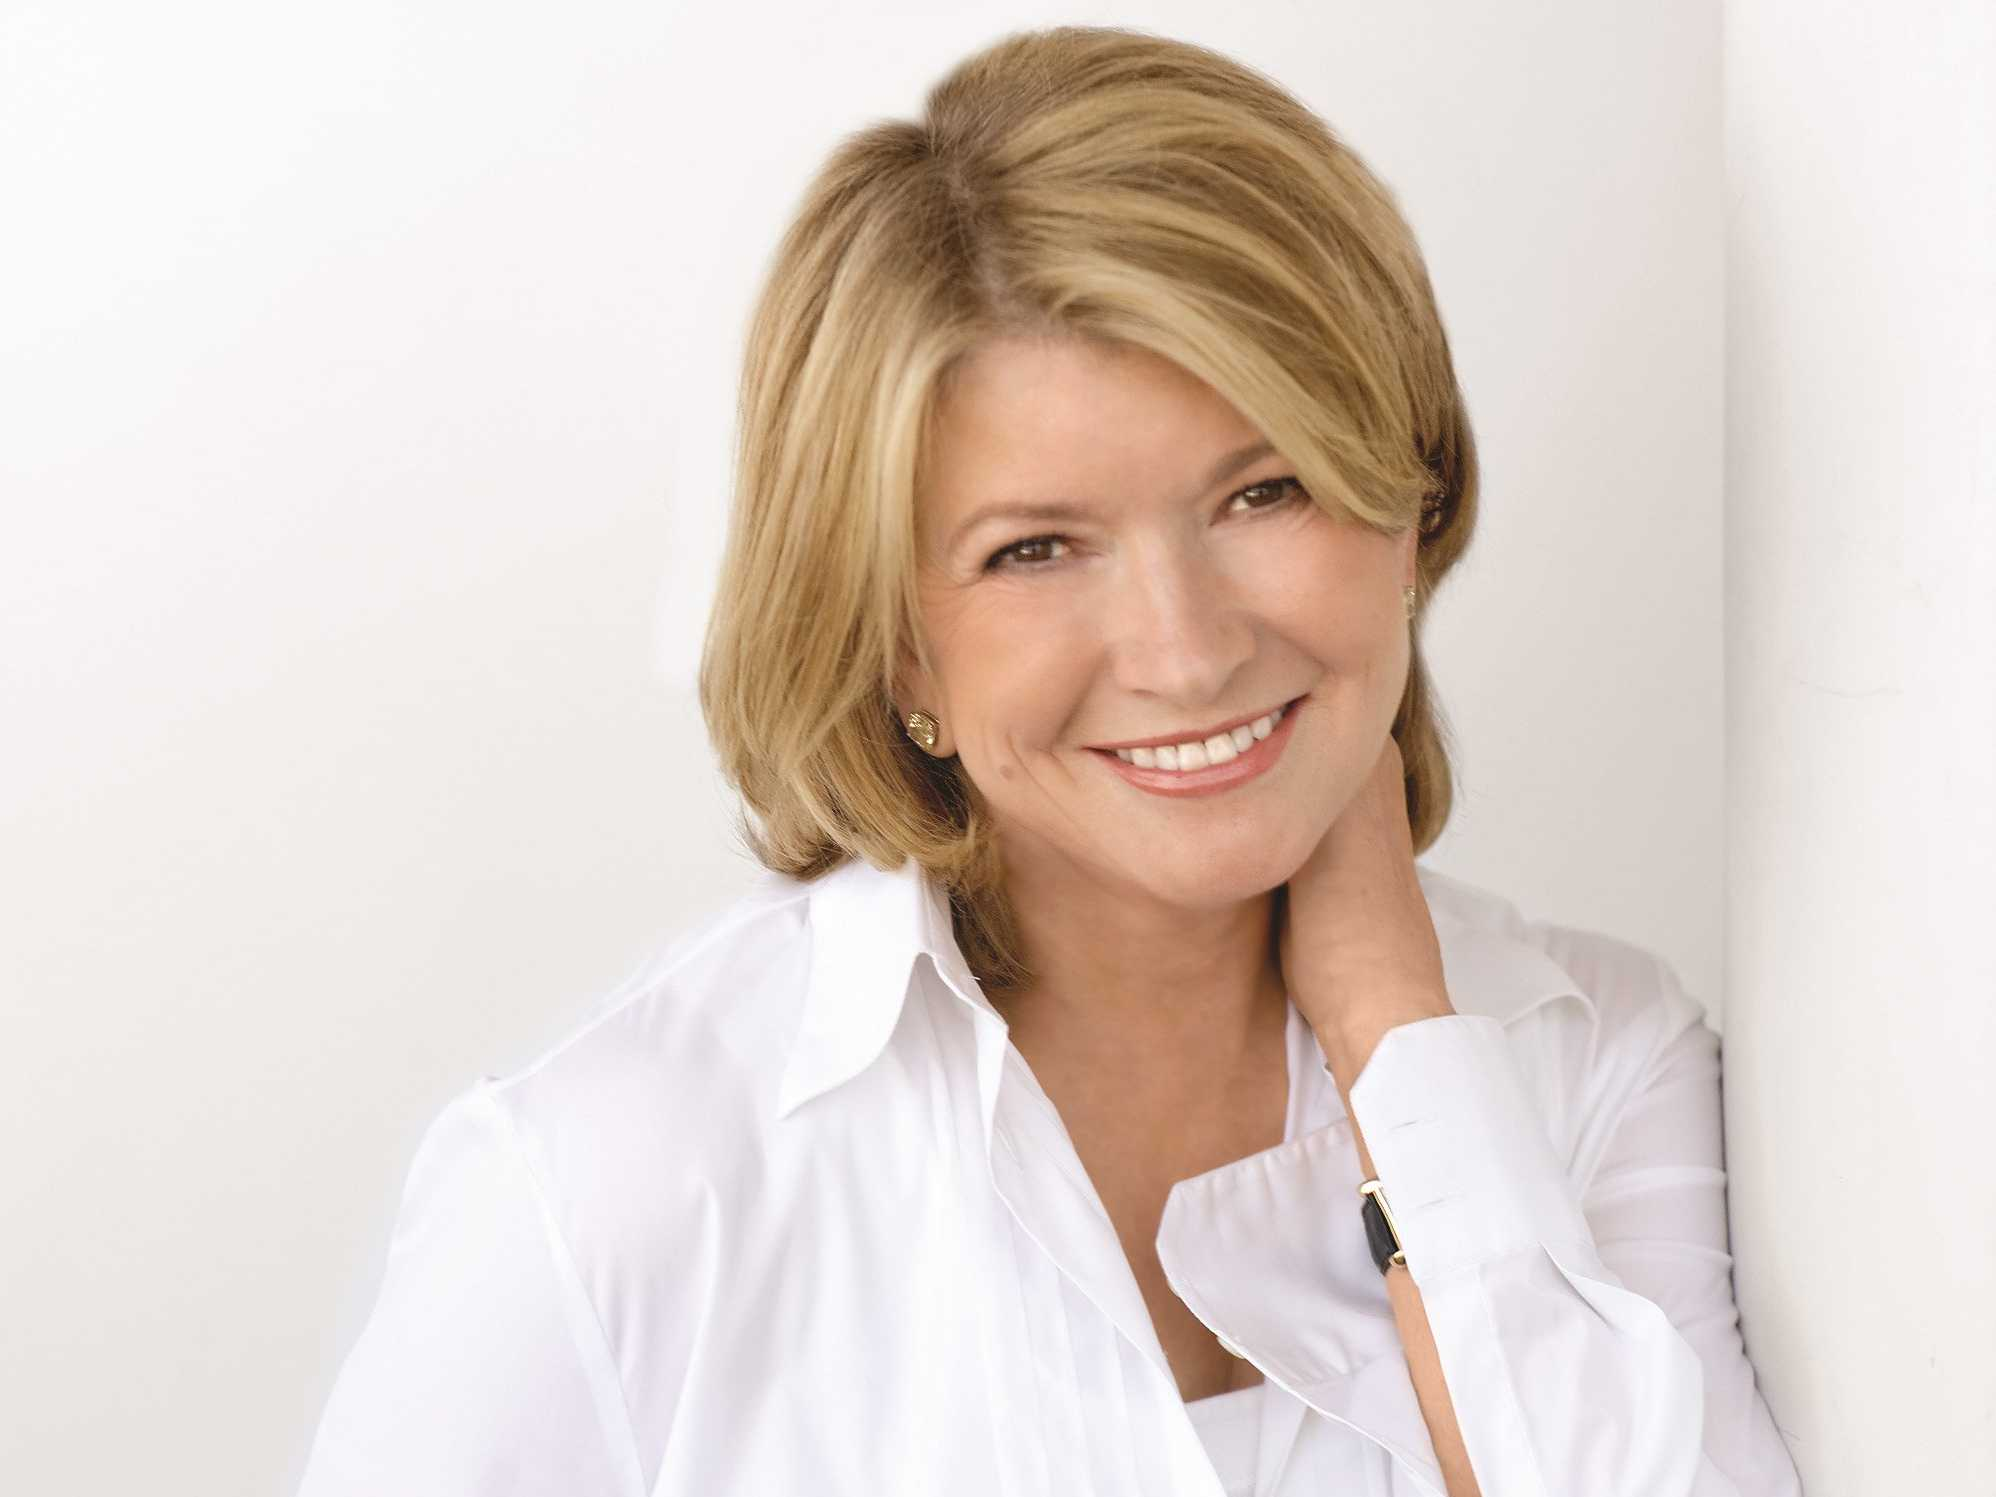 #TheArt of Leadership – Martha Stewart takes the stage on Thursday!